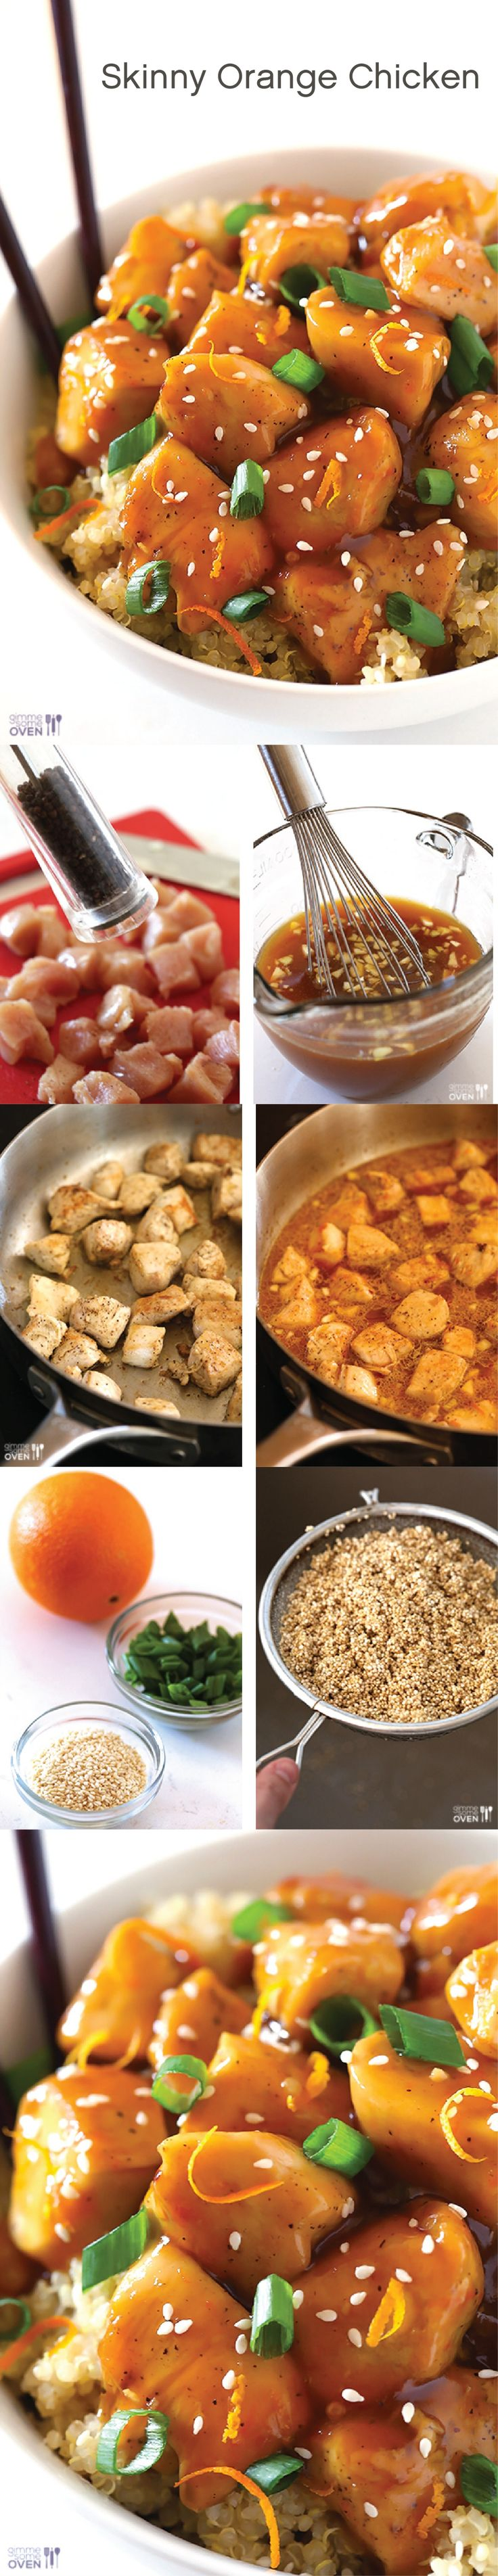 This Skinny Orange Chicken dish tastes just as good as it looks! Try it for dinner tonight!